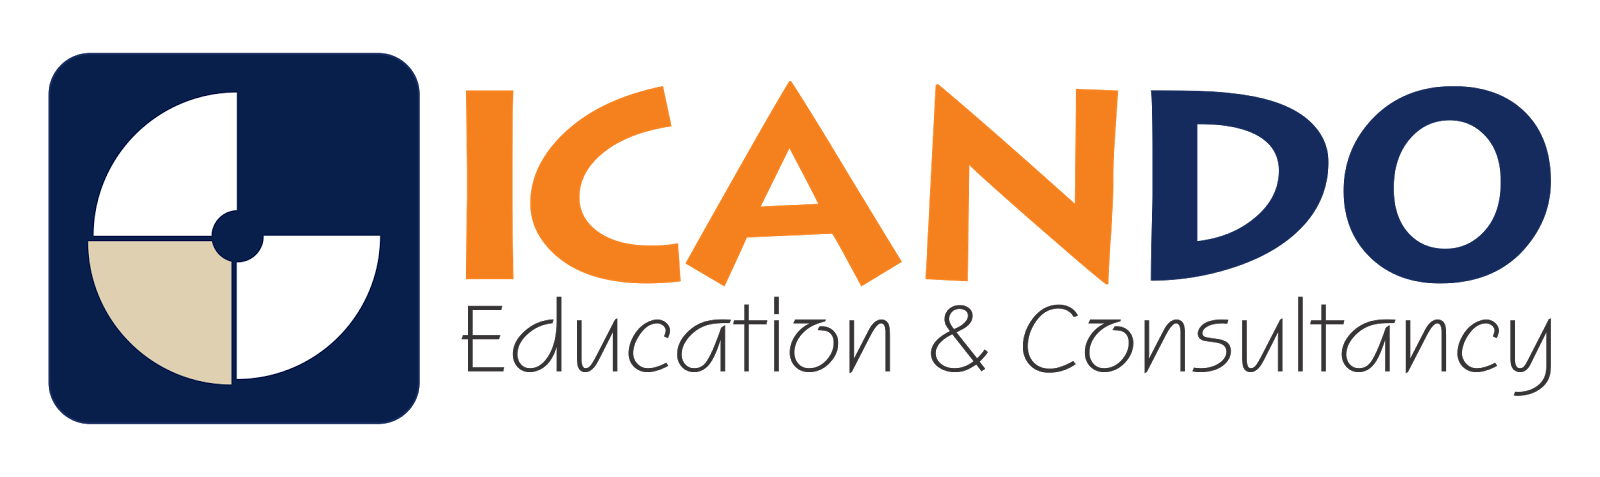 ICANDO Education 'n Consultancy